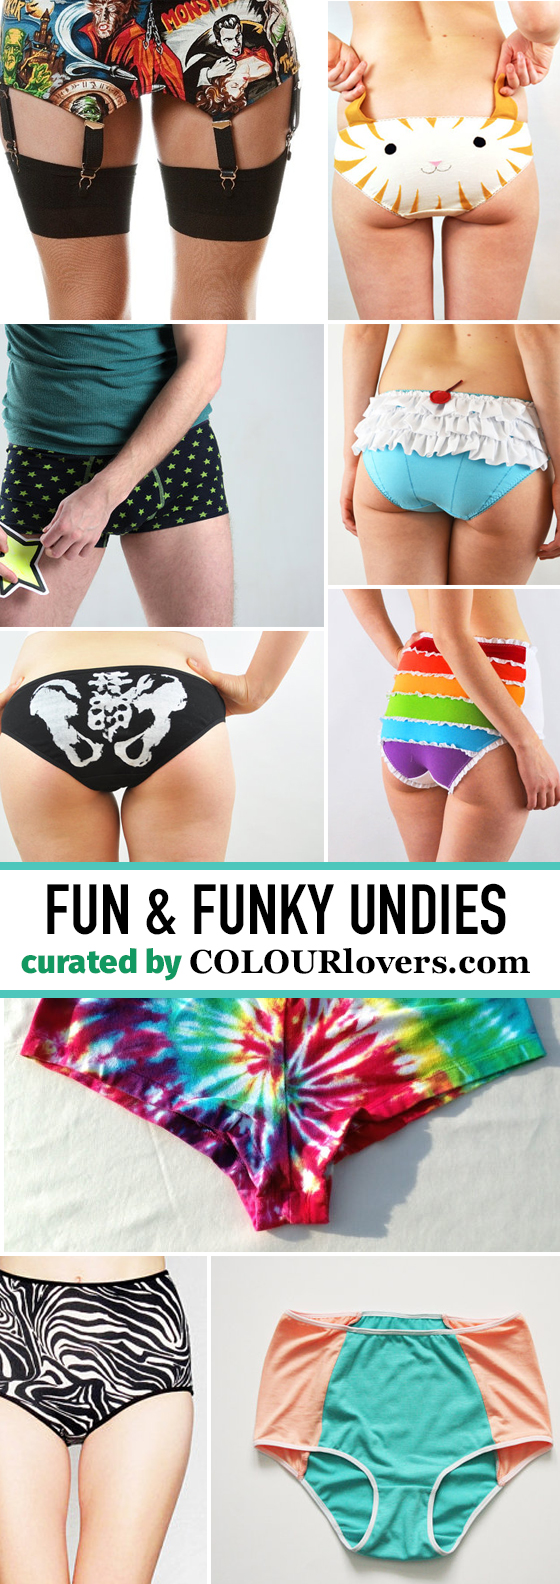 funkyundies